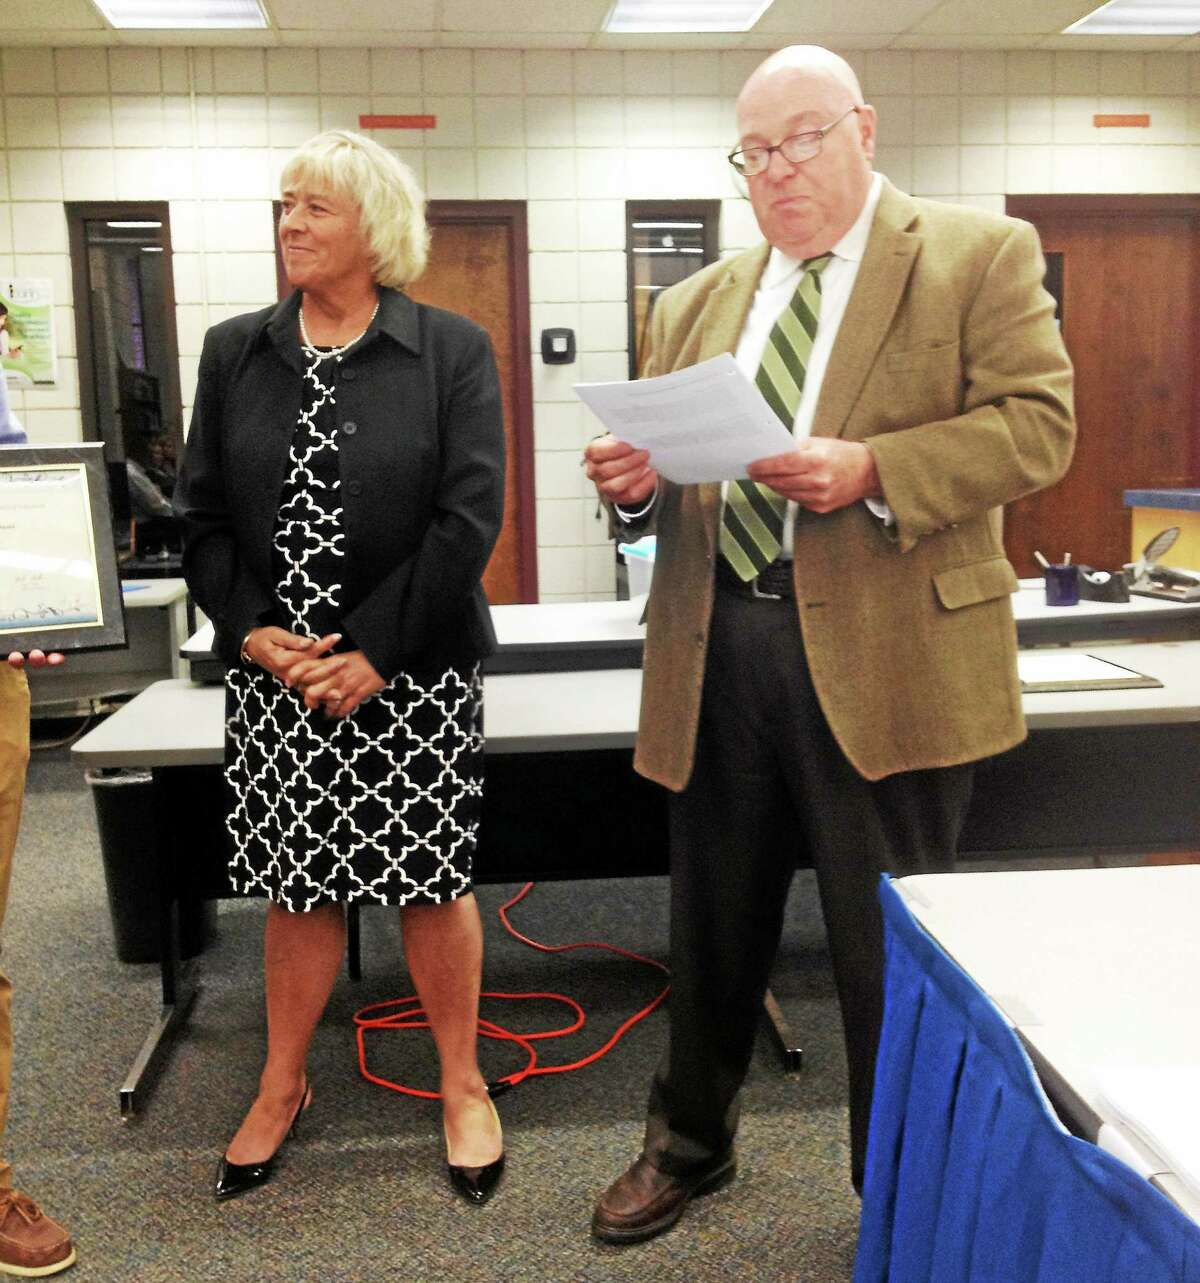 East Hampton High School Superintendent of Schools and Board of Education Chair Ken Barber speak at a recent meeting.